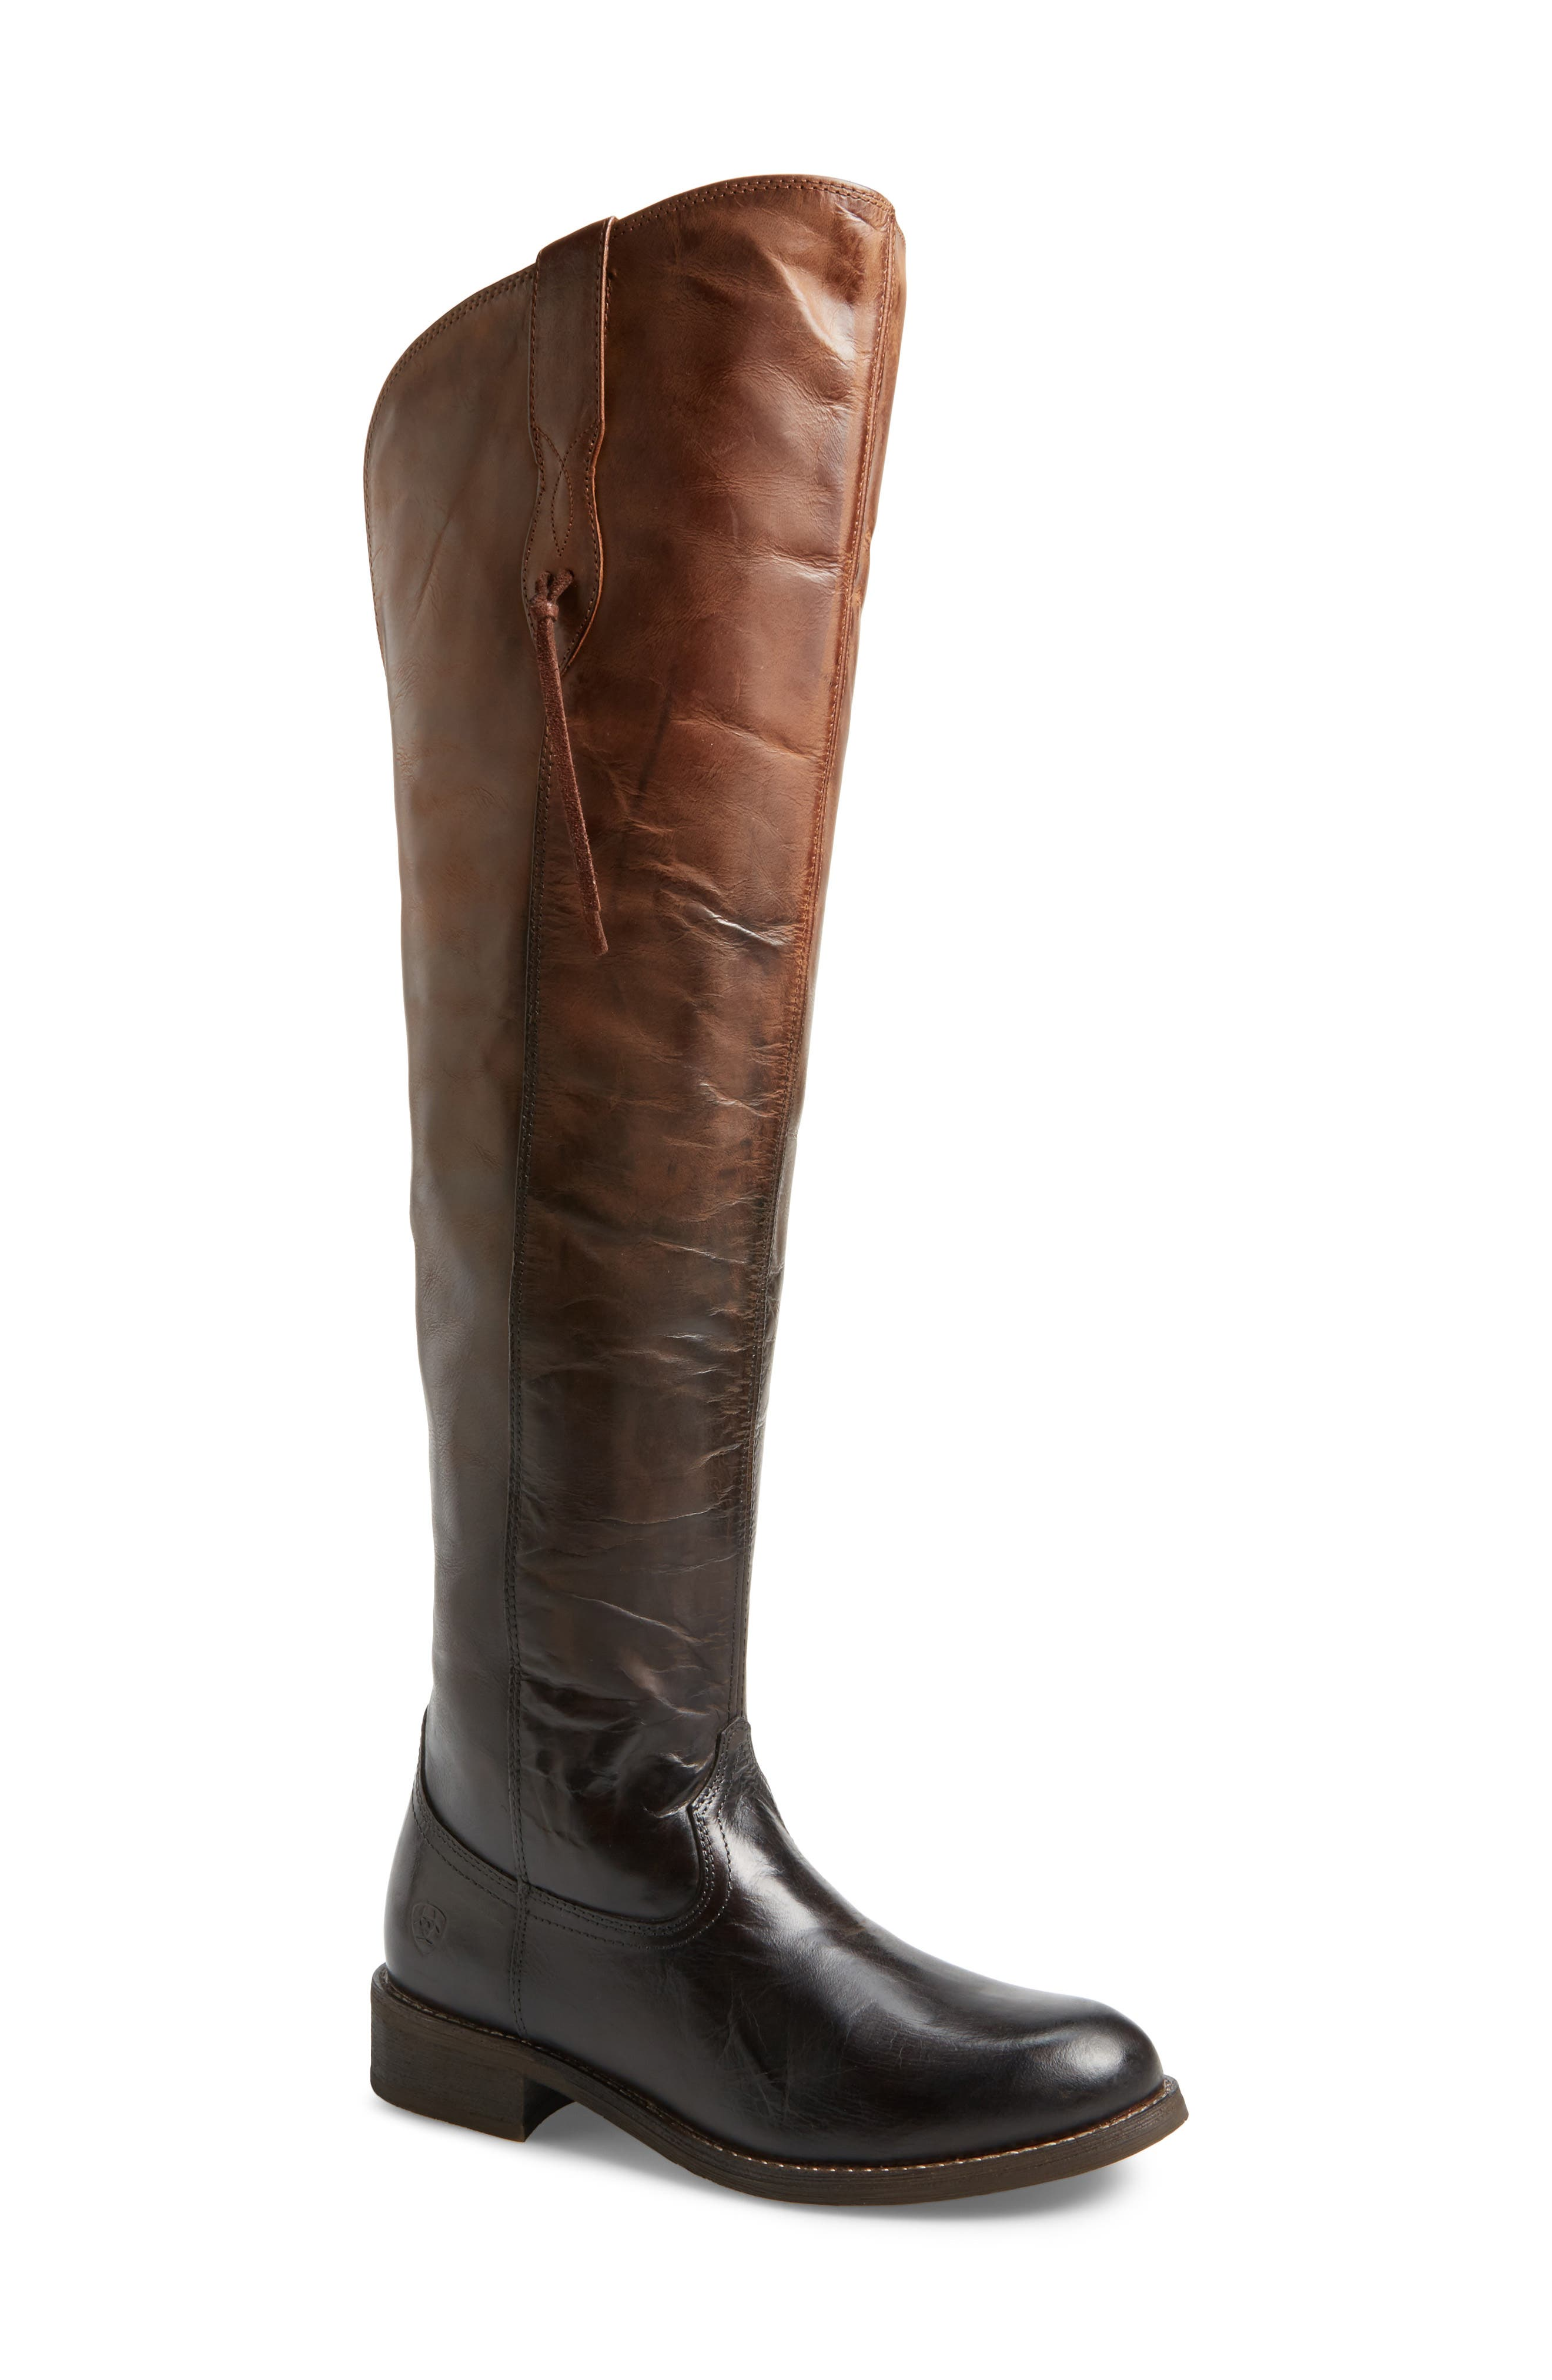 Farrah Over the Knee Boot,                         Main,                         color, Sassy Chocolate Leather